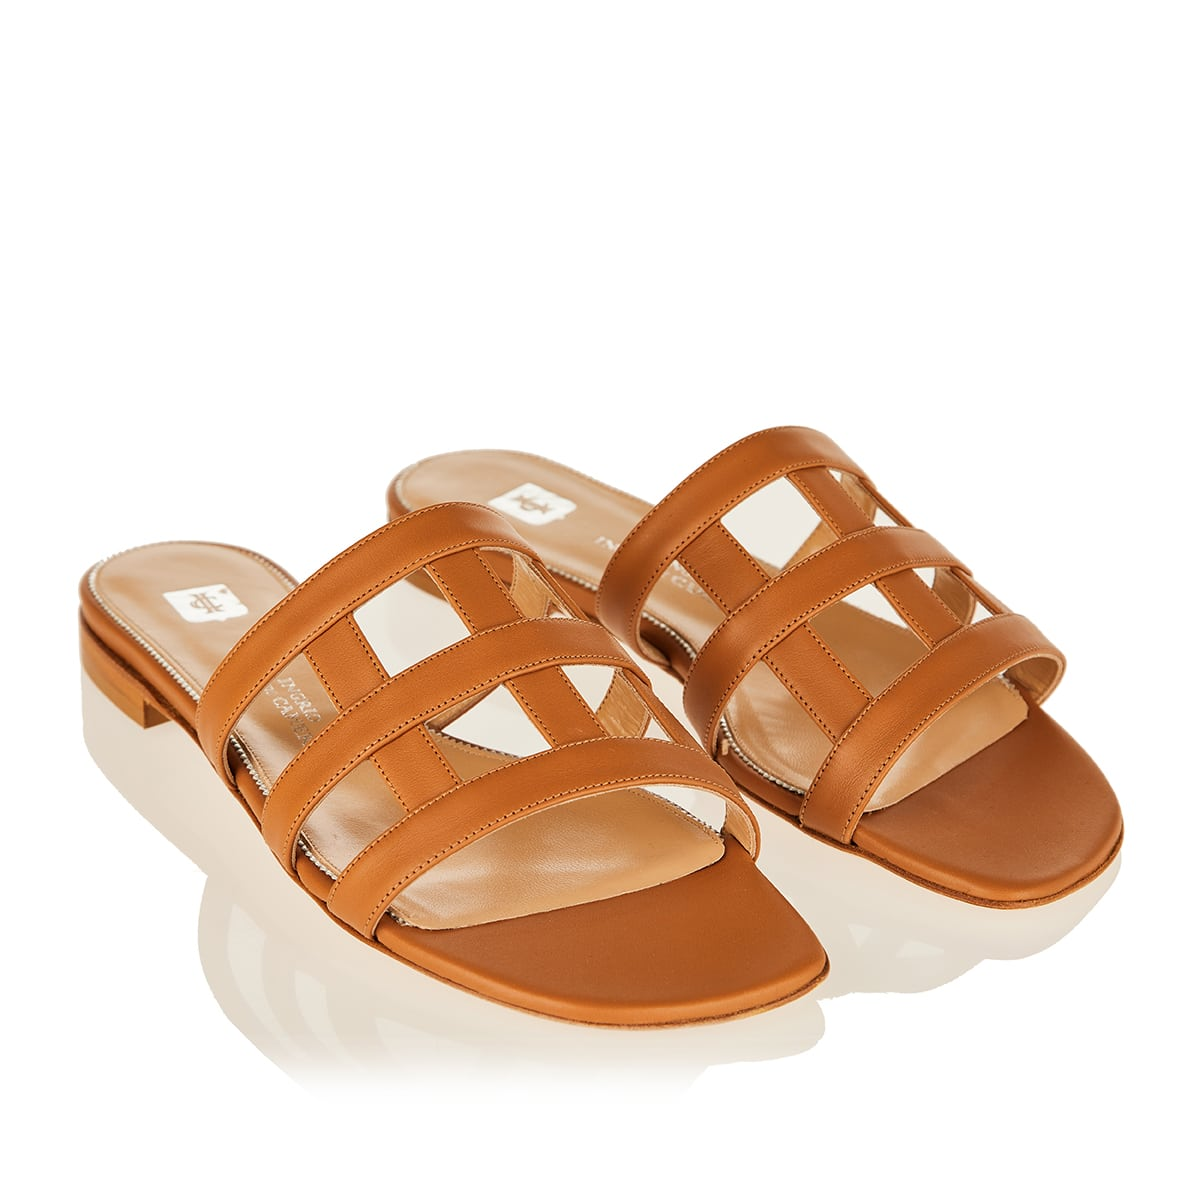 Giuli leather flat sandals